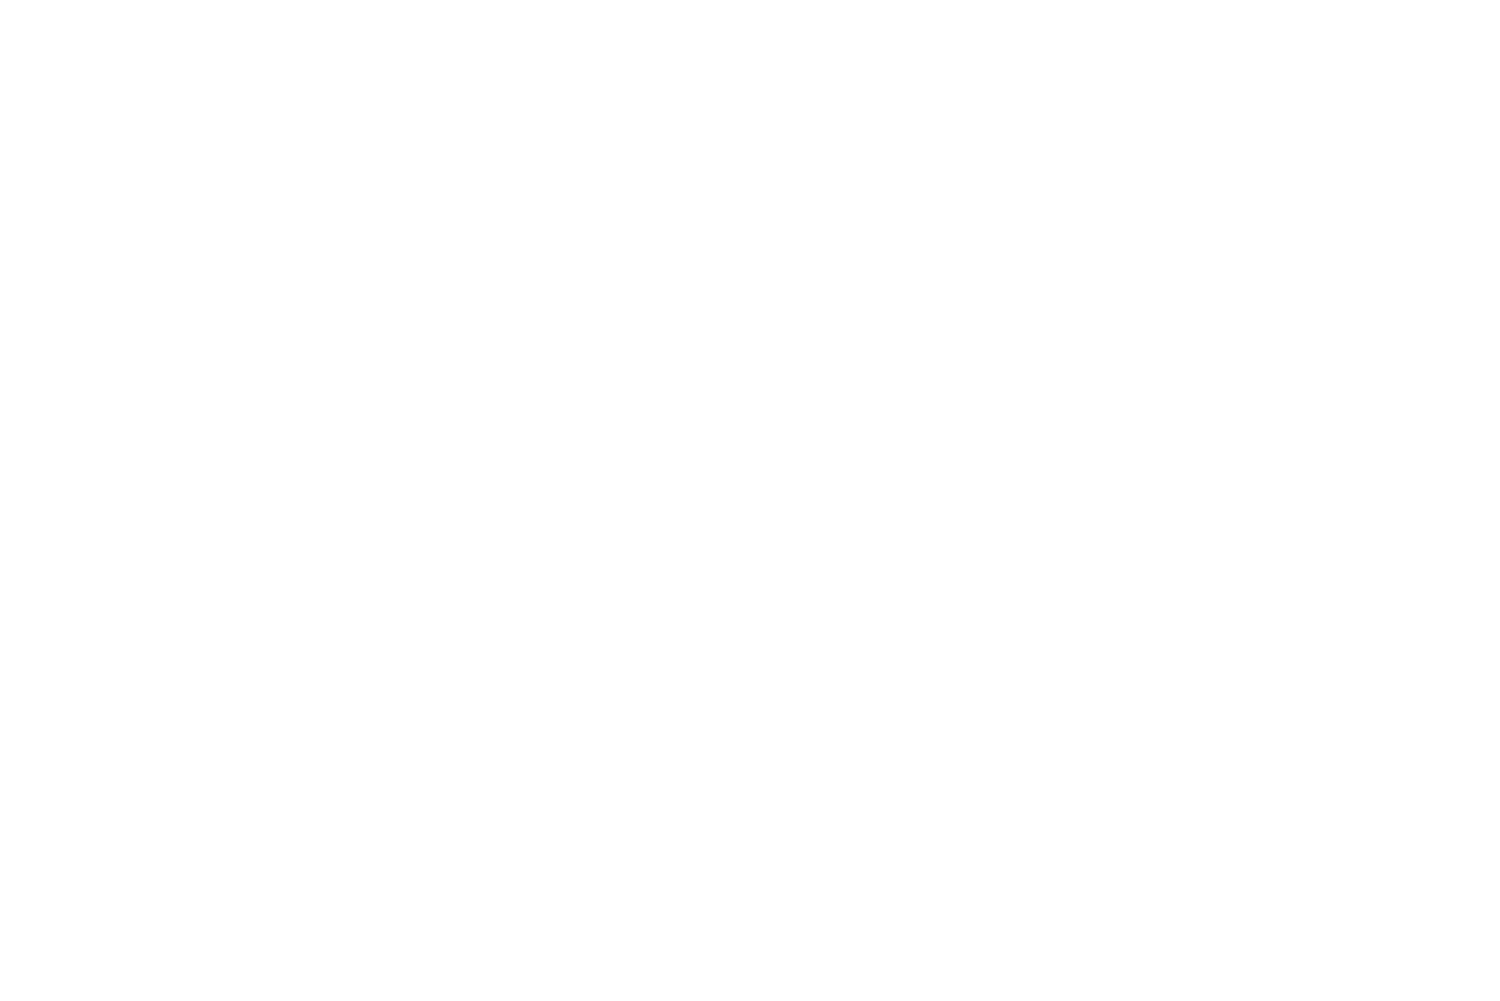 Sam's Word, LLC